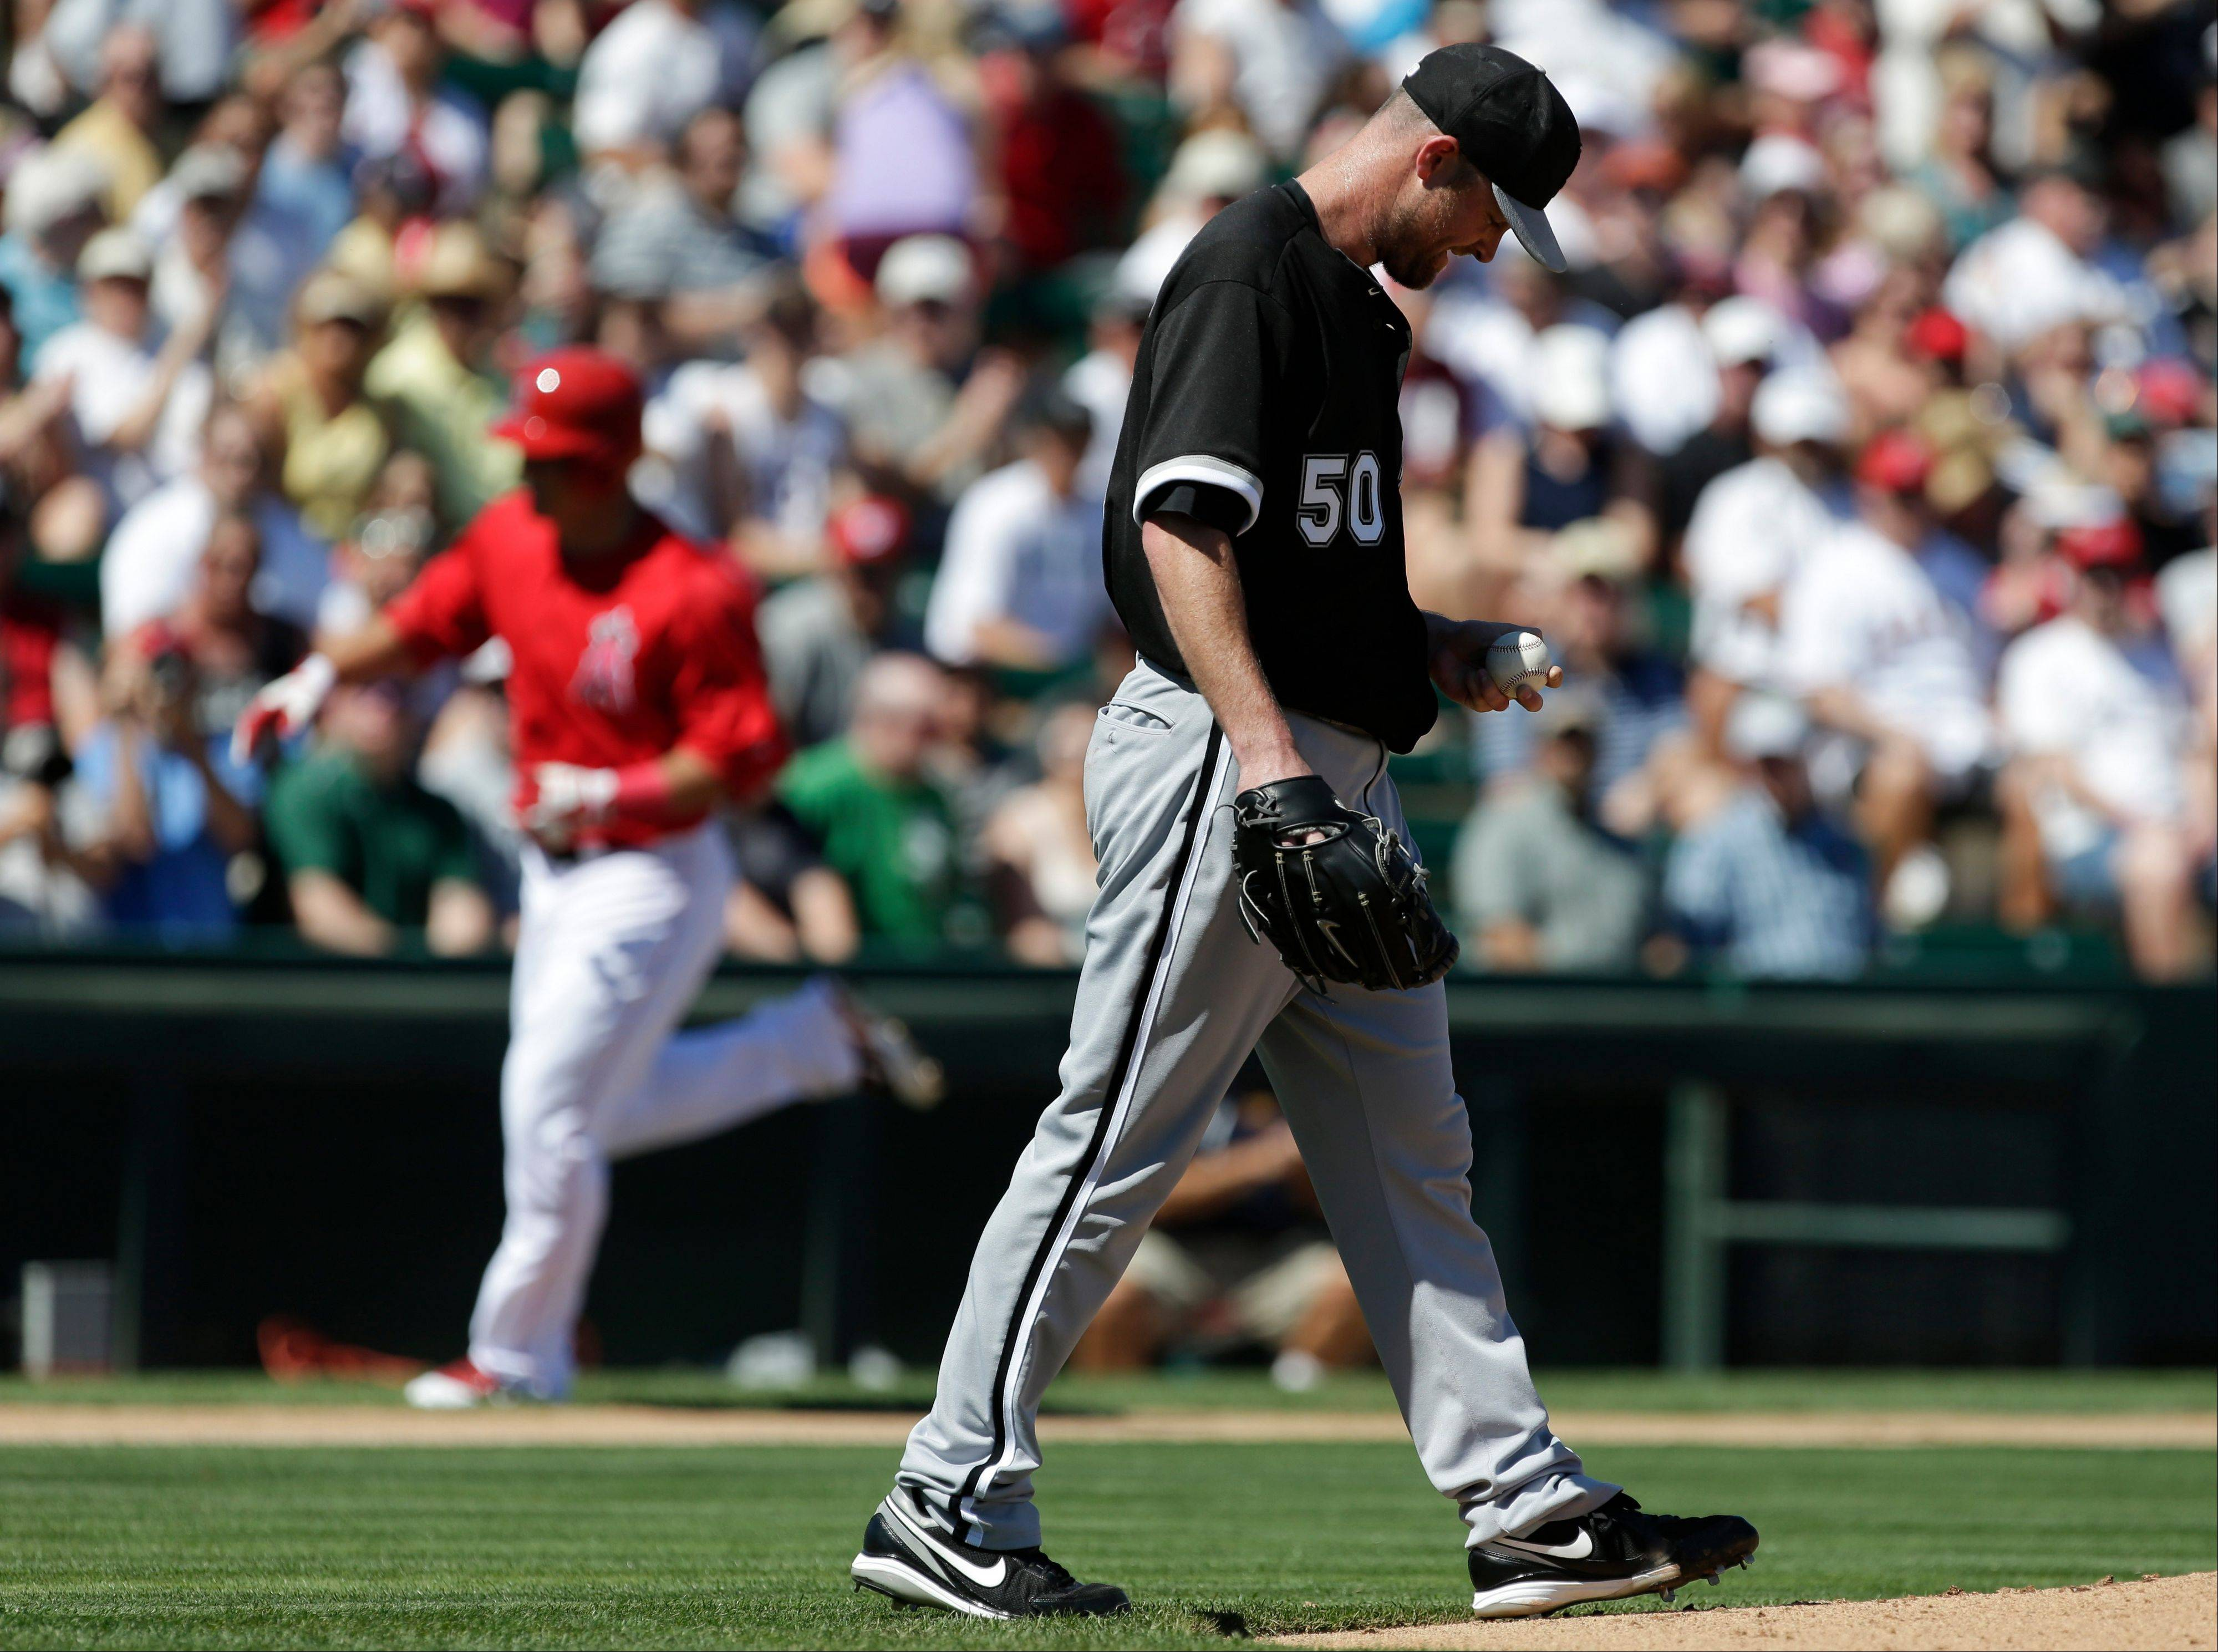 Los Angeles Angels' Mike Trout, back left, round the base after a home run as Chicago White Sox starting pitcher John Danks looks at the ball during the first inning of a spring training baseball game in Tempe, Ariz., Thursday, March 14, 2013.